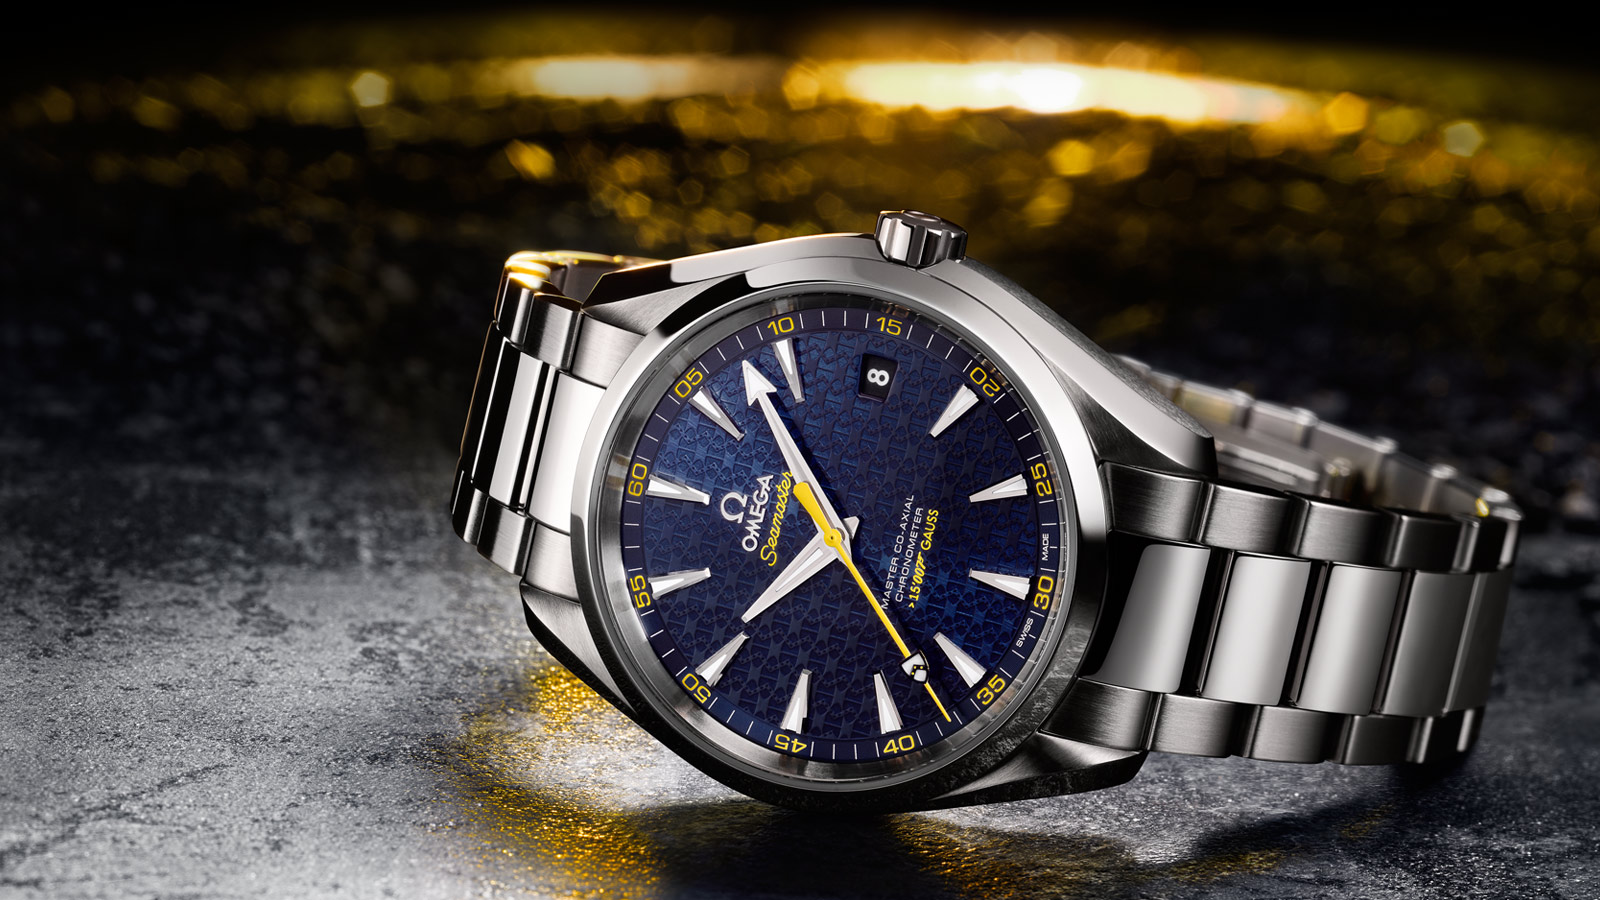 OMEGA SEAMASTER AQUATERRA MASTER CO-AXIAL JAMES BOND EDICION LIMITADA